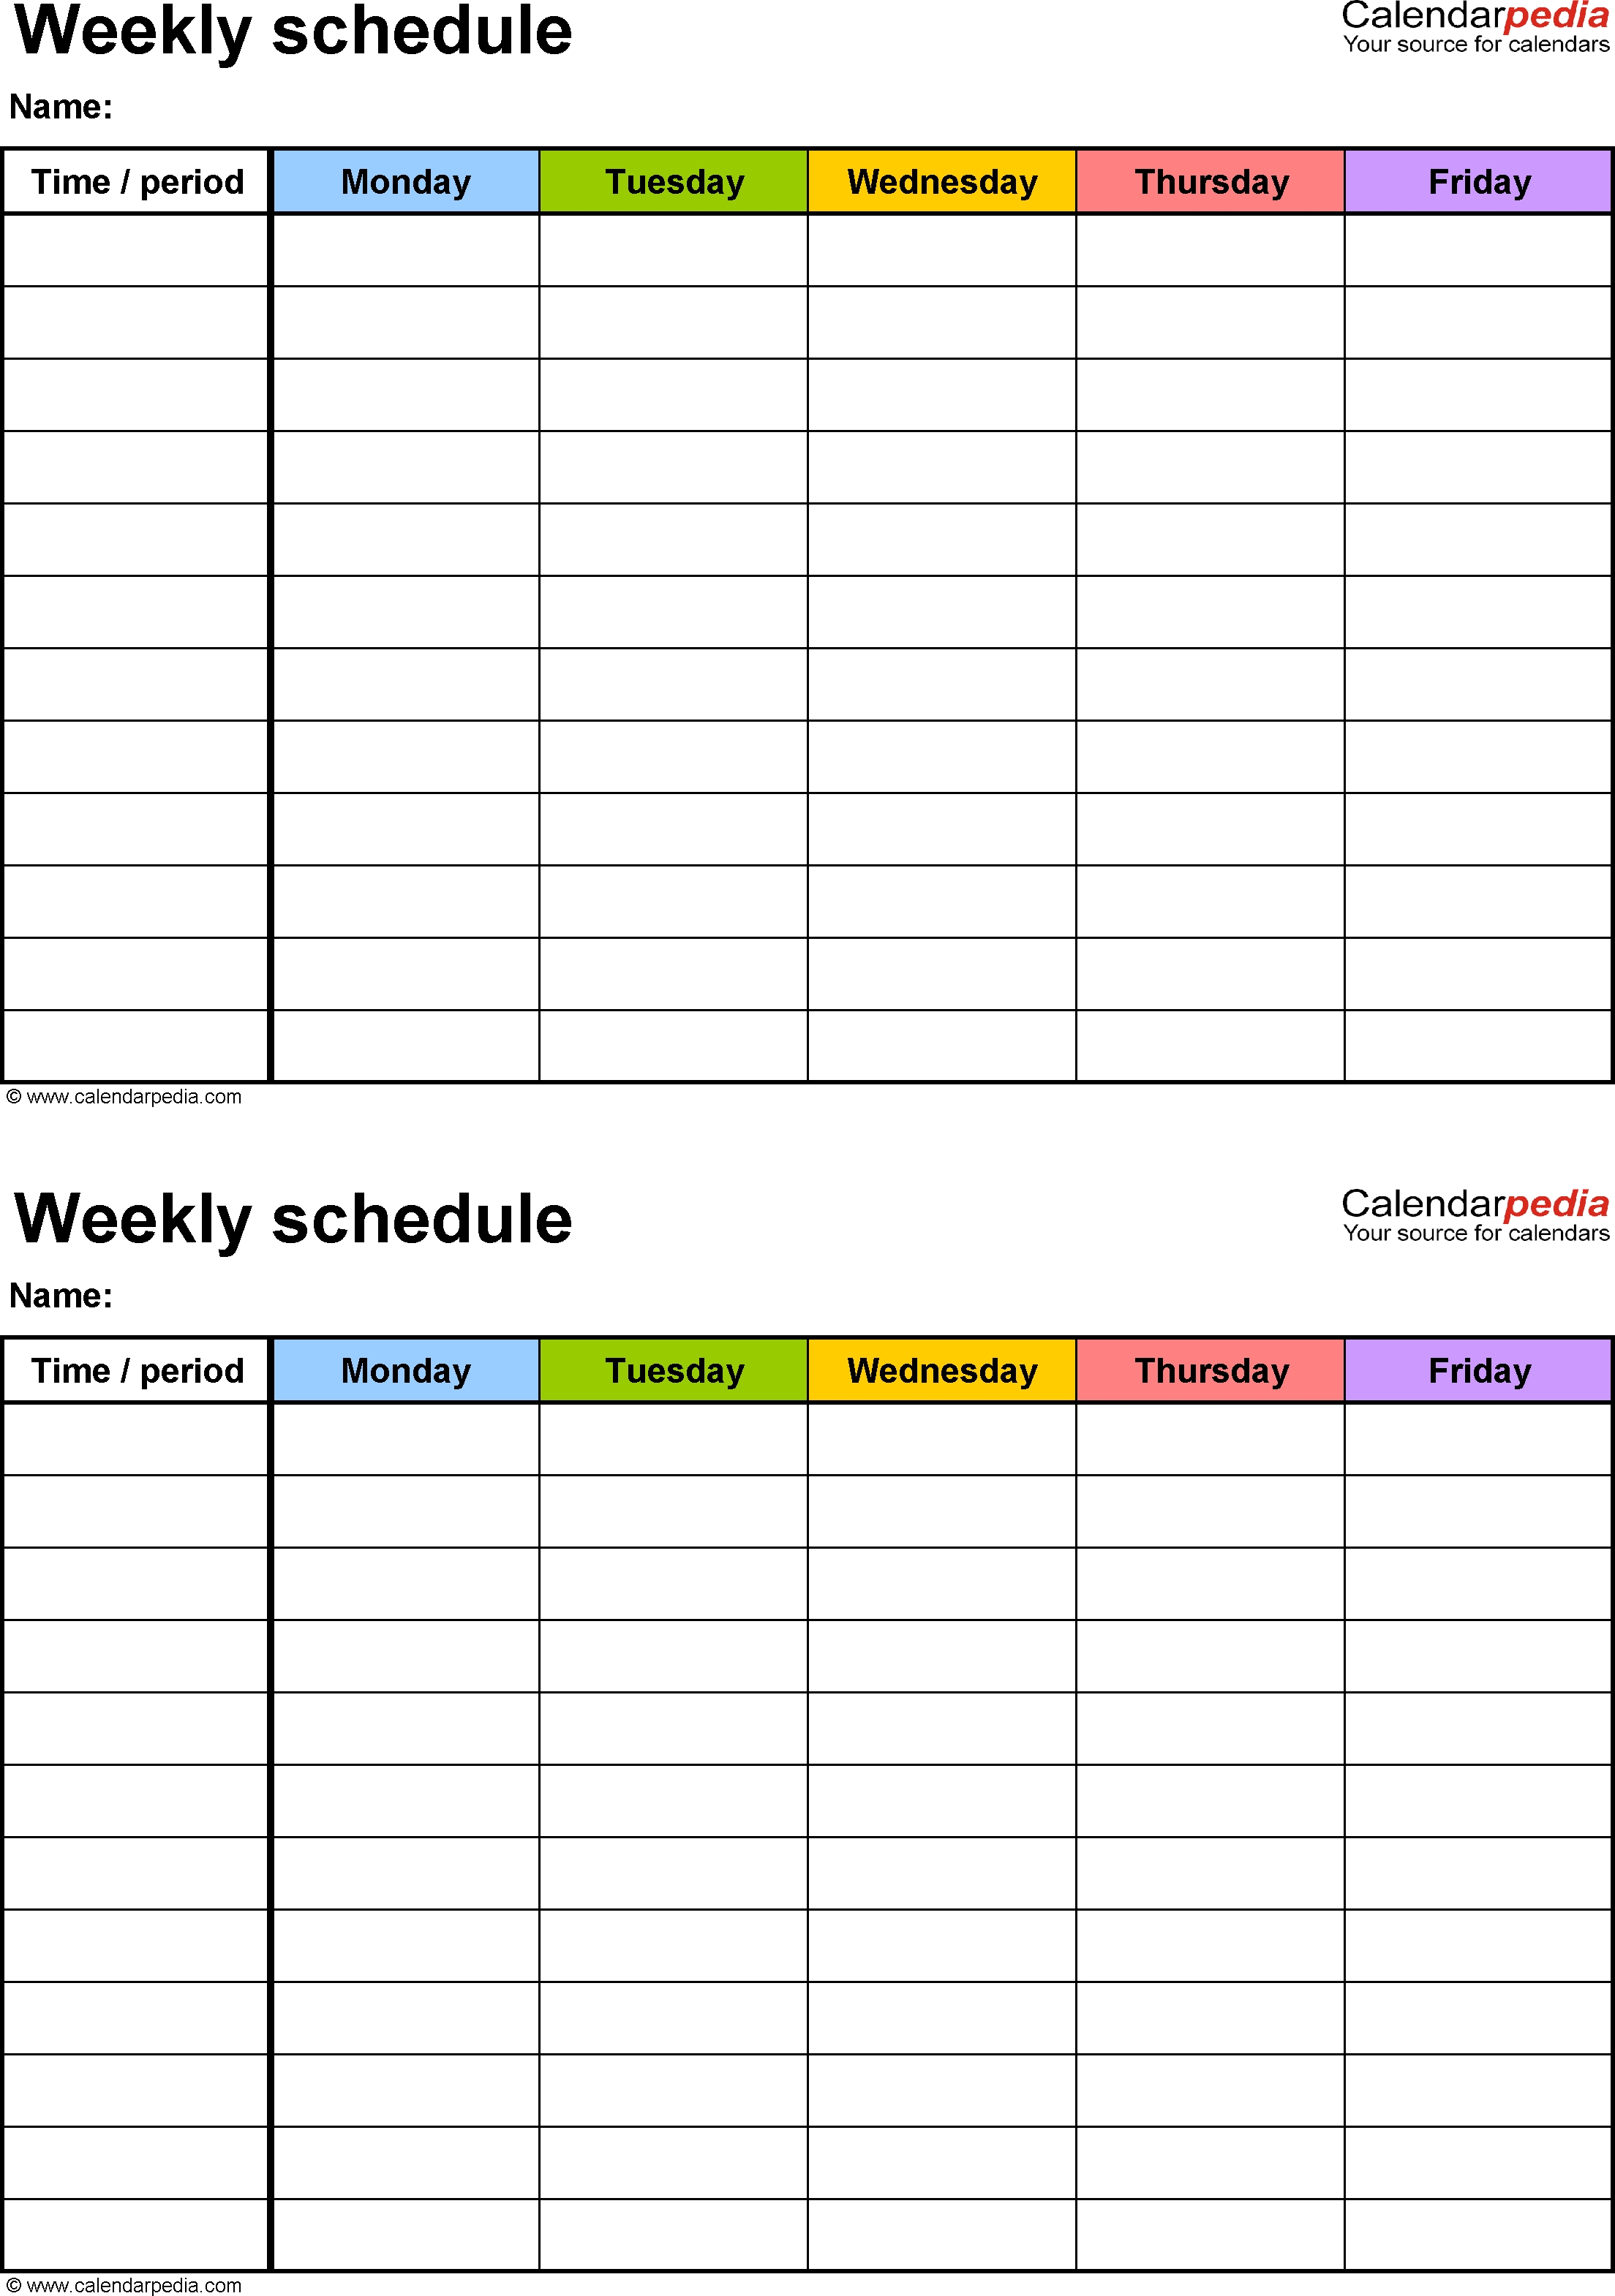 Free Weekly Schedule Templates For Word - 18 Templates within Day By Day And Weekly Printable Calendars